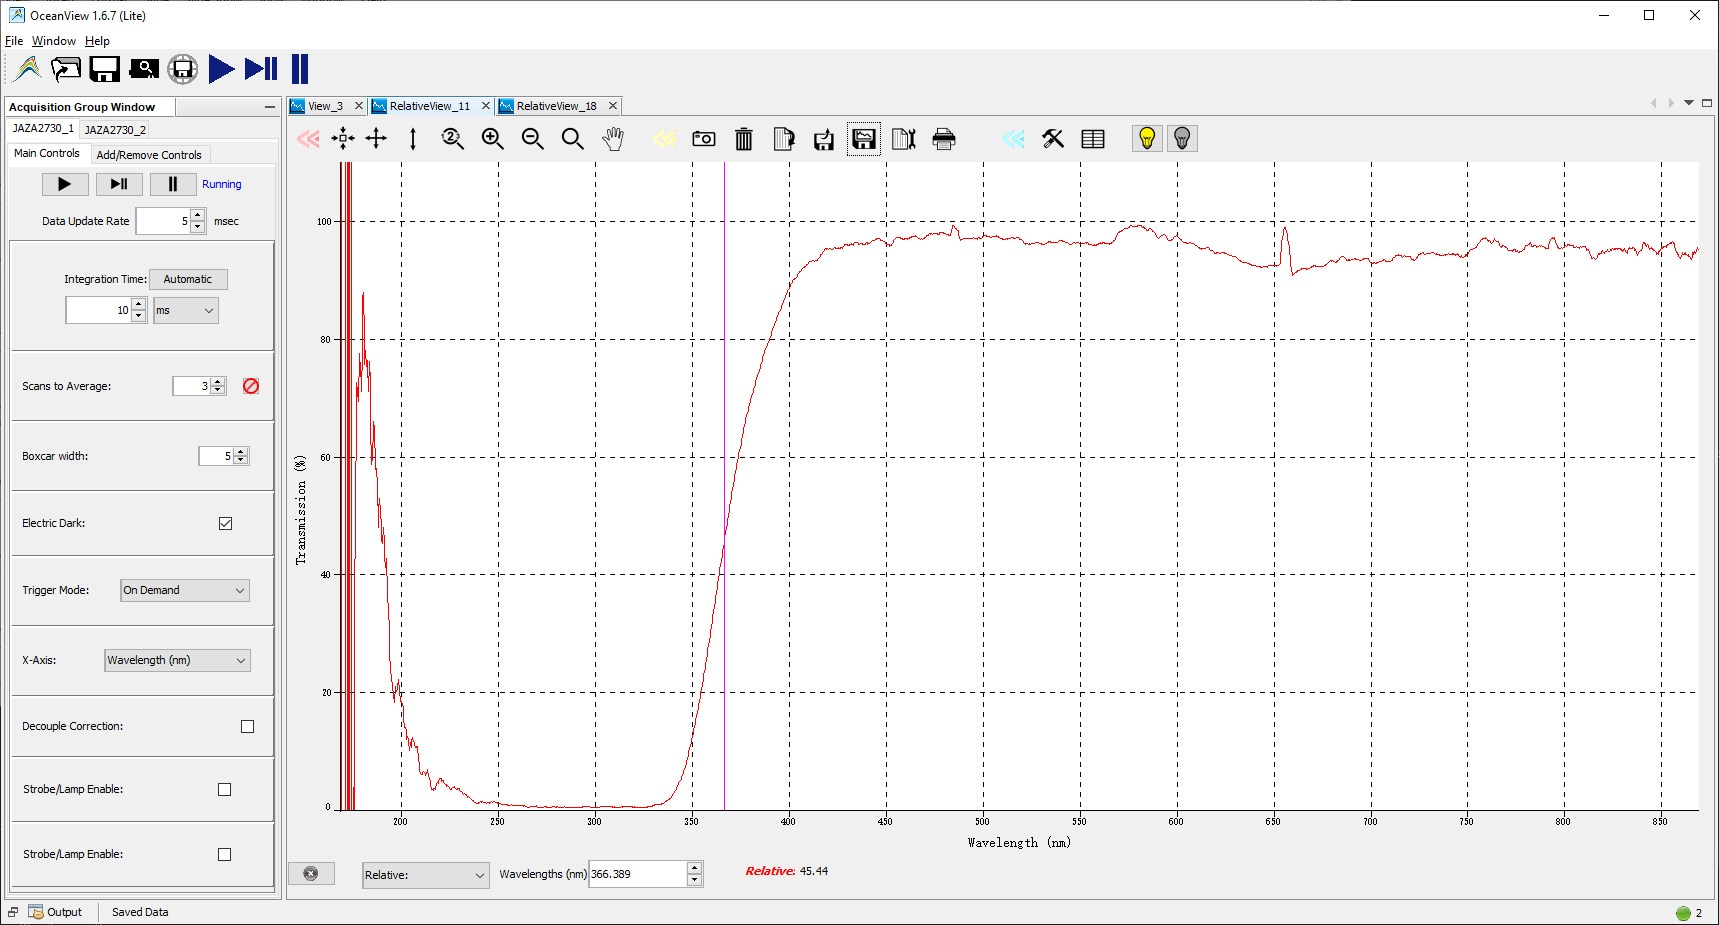 Attached Image: Wollensak_Spectra_Full.jpg